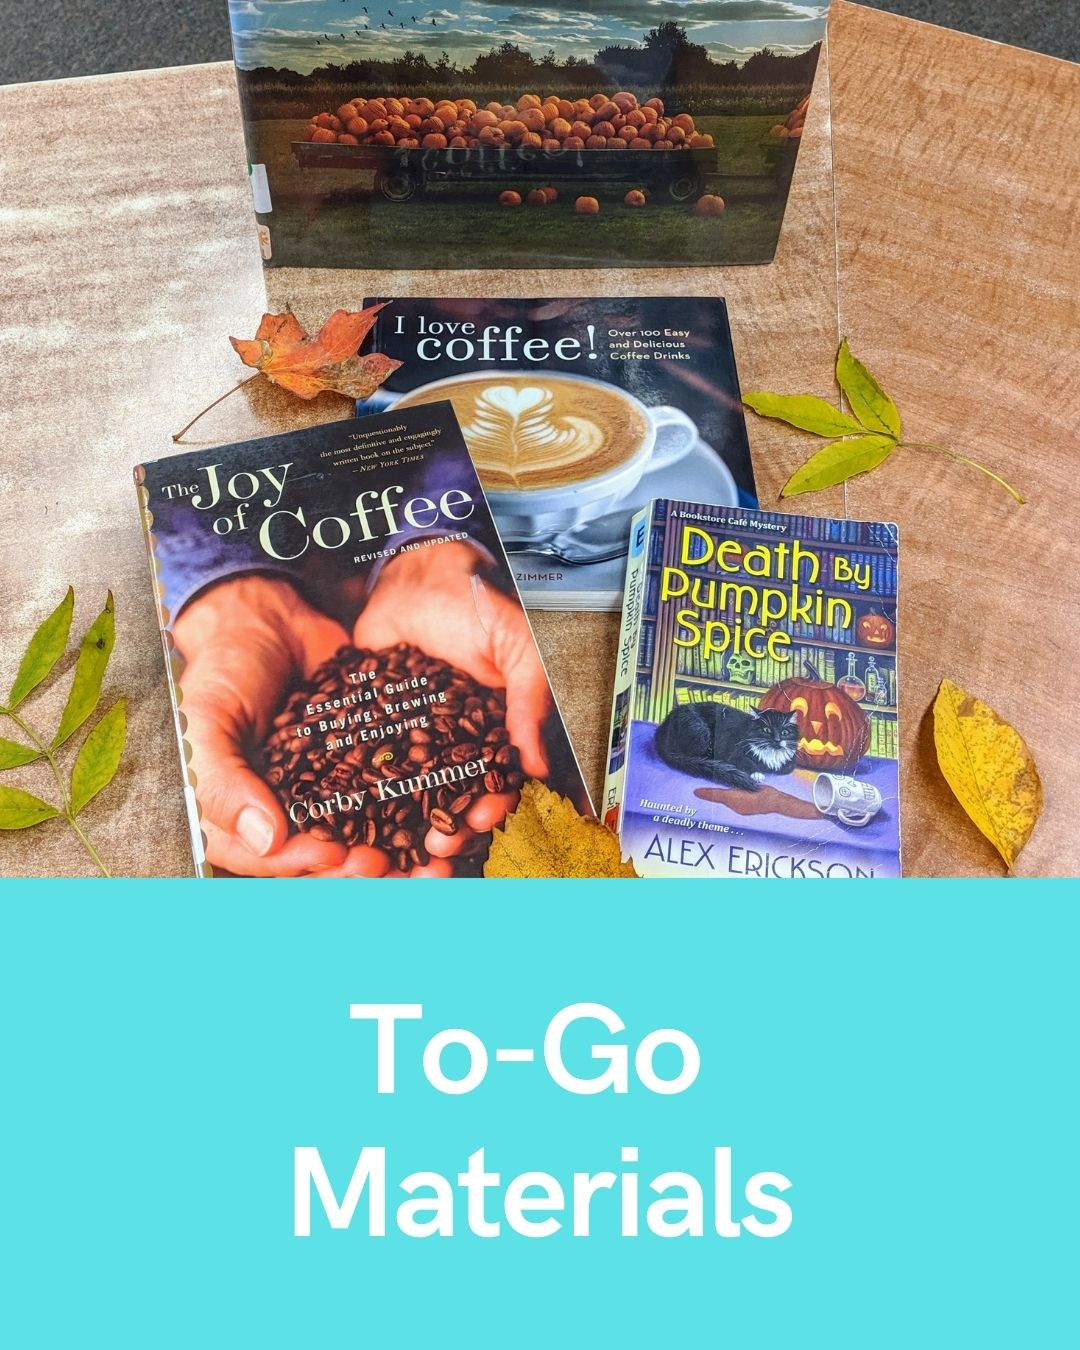 To-Go Materials